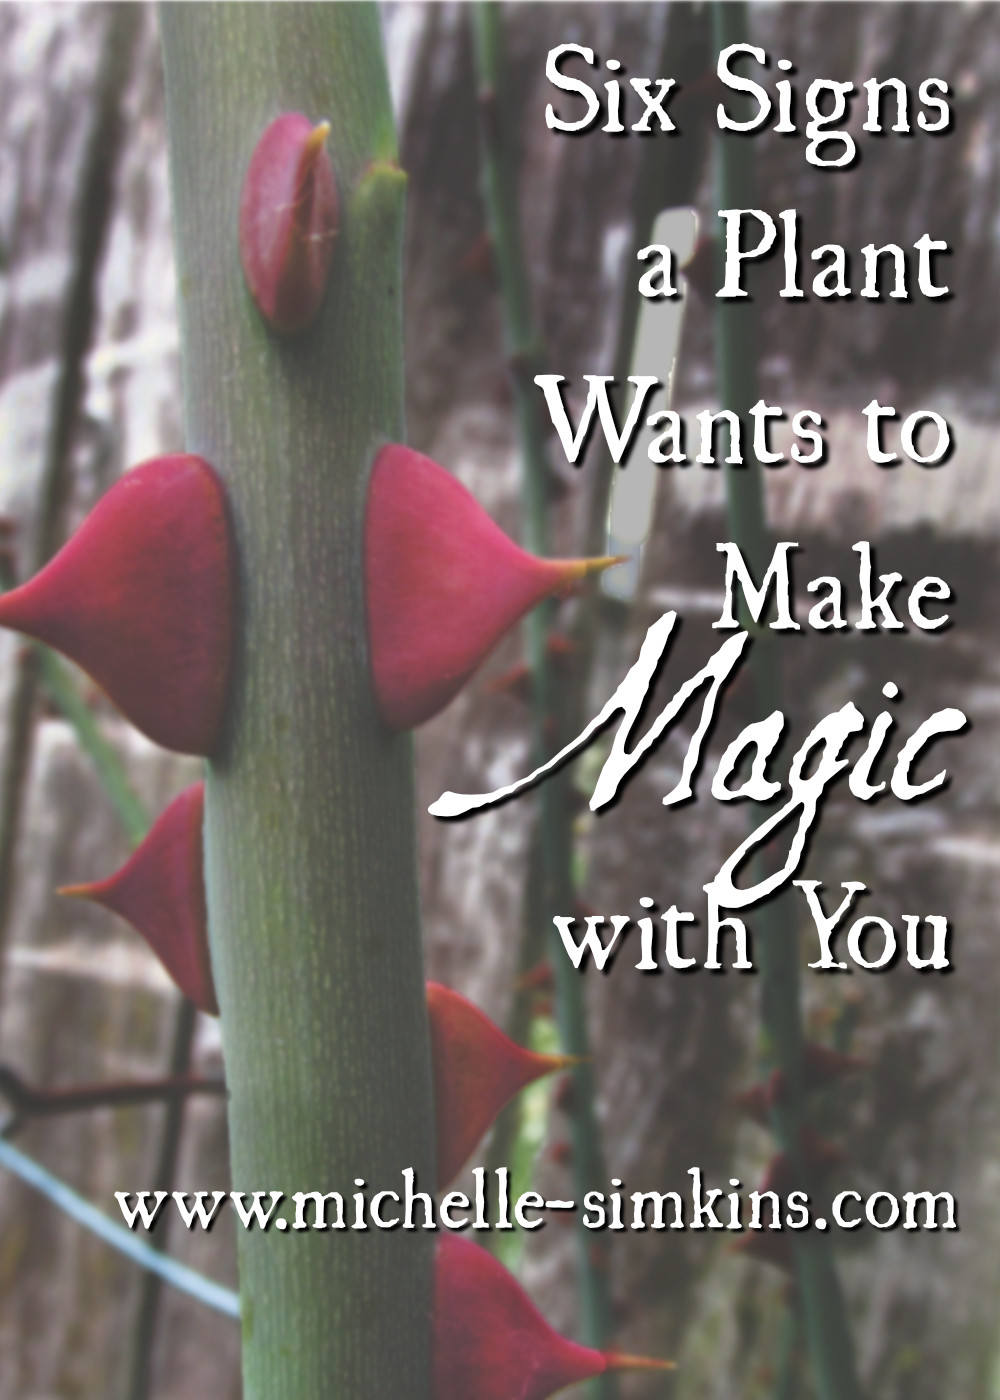 Six Signs a Plant Wants to Make Magic with You